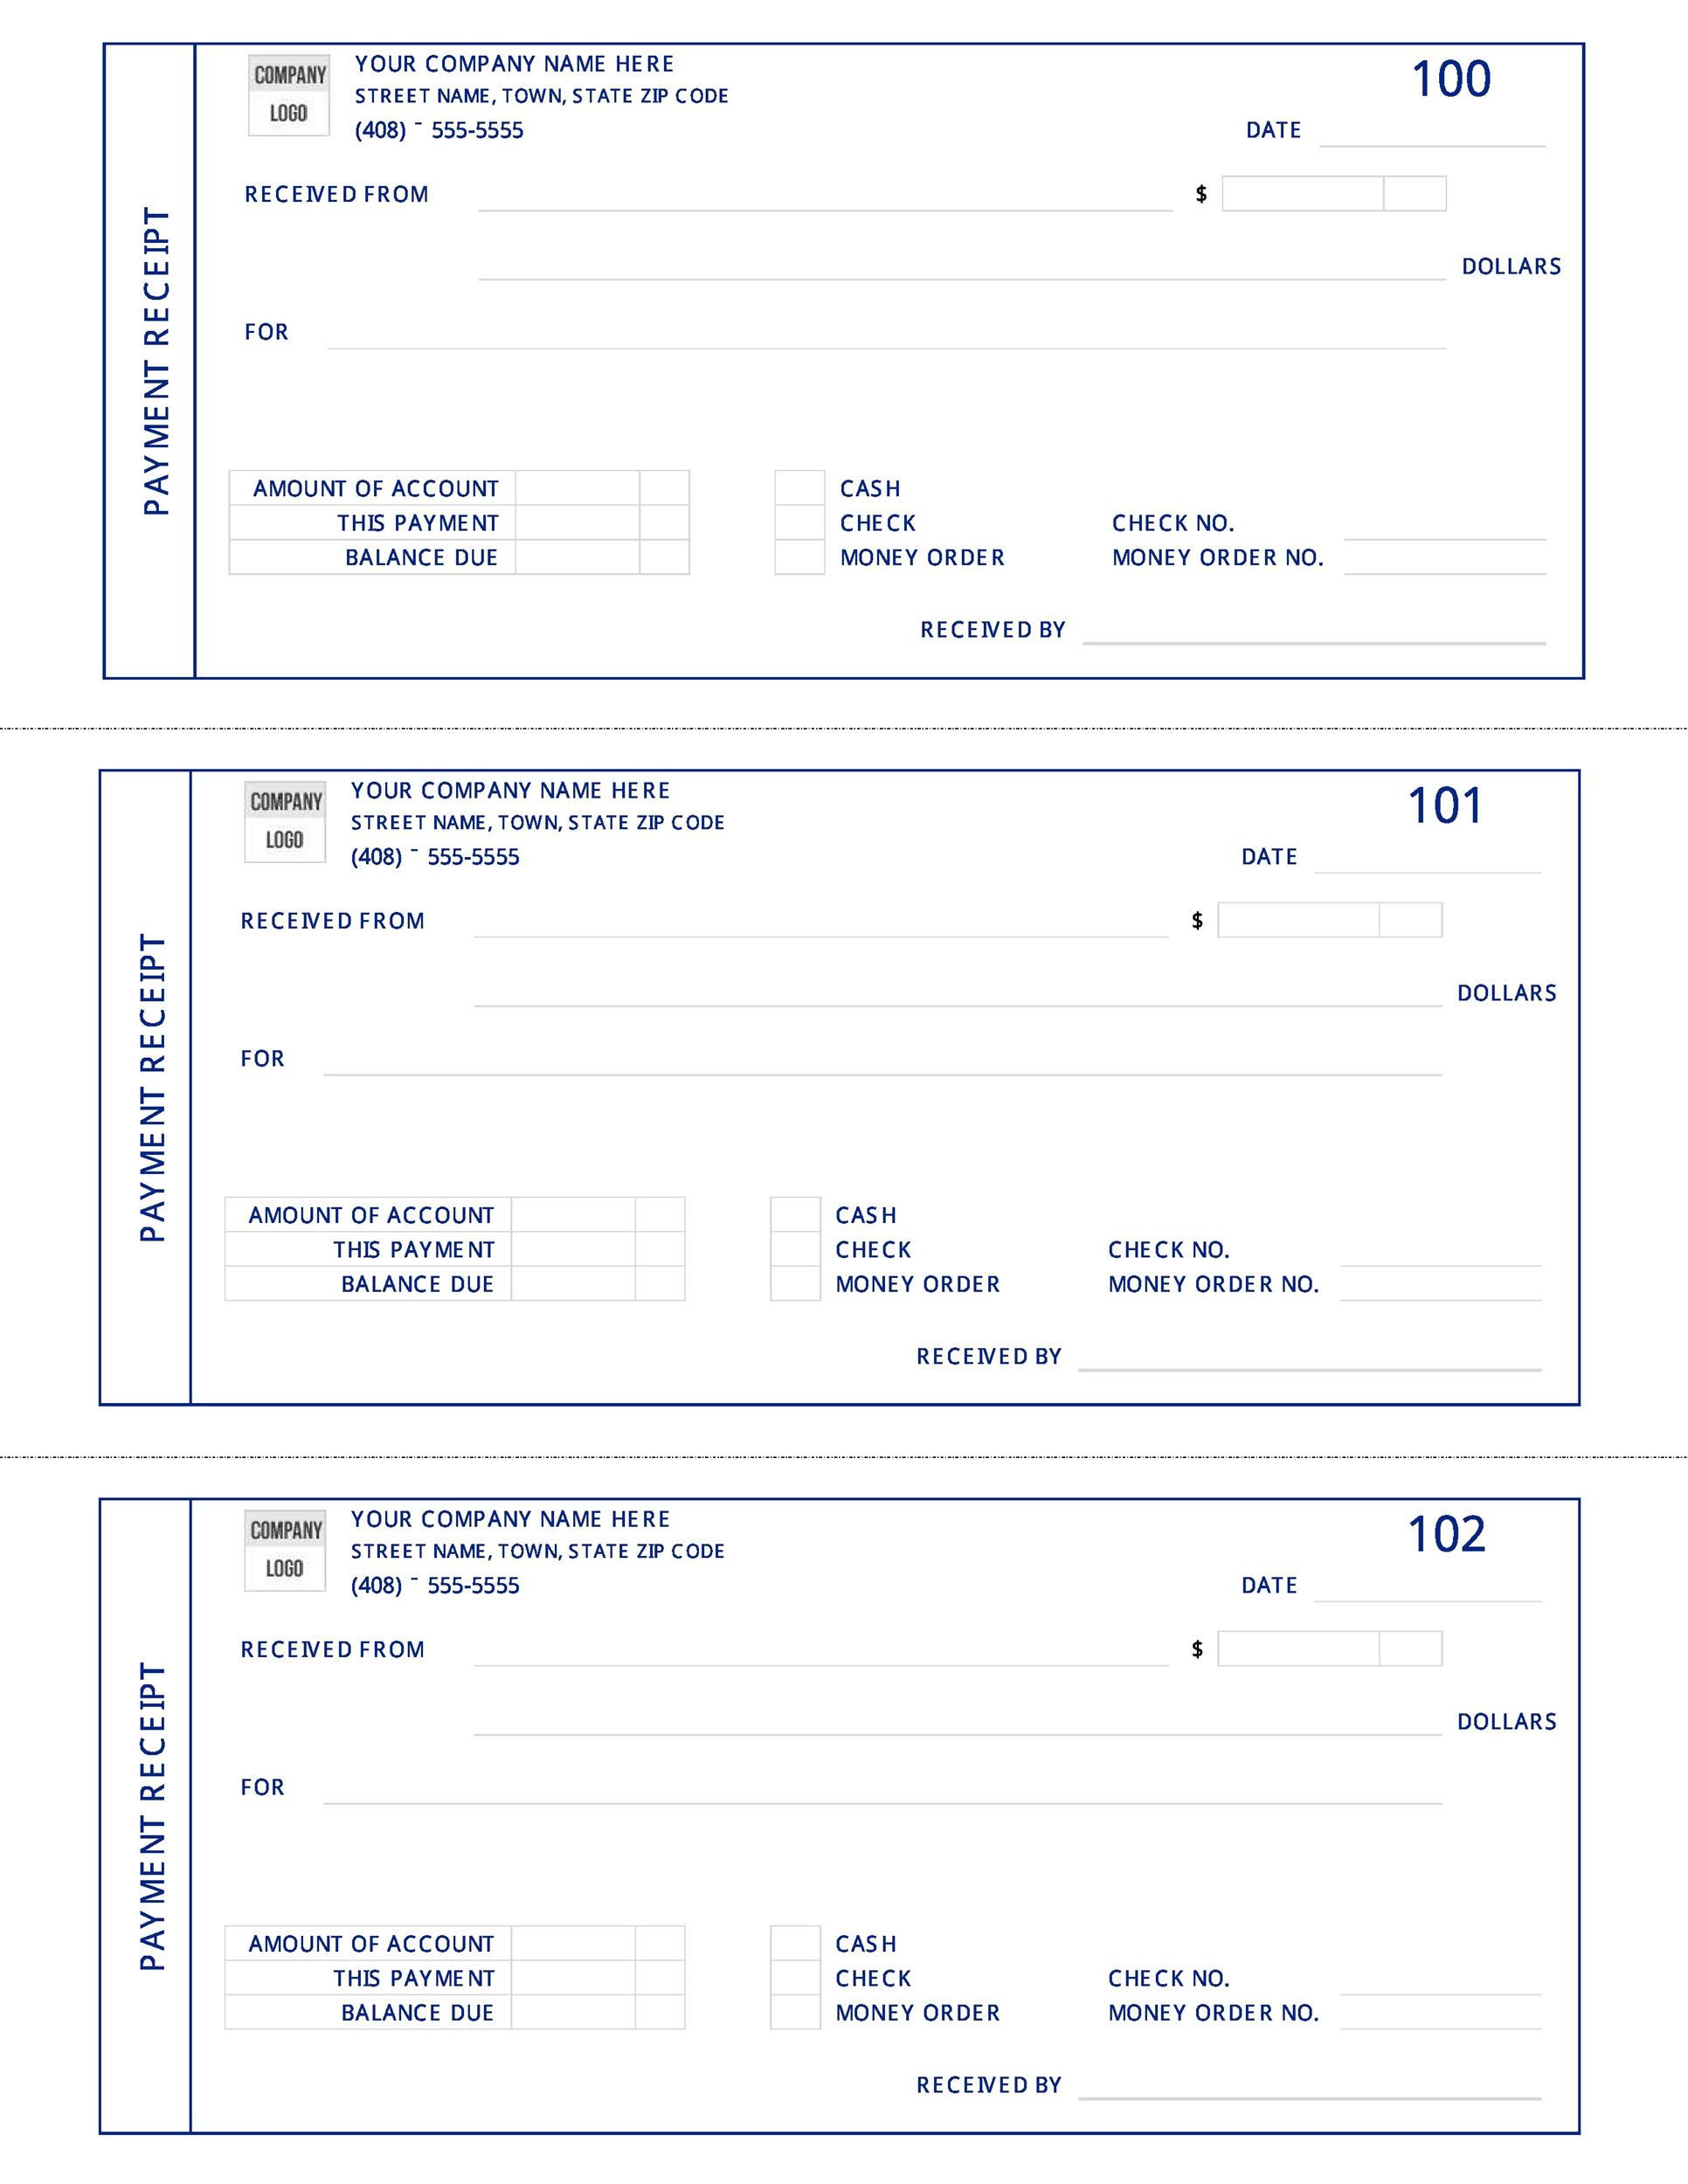 50 Free Receipt Templates Cash Sales Donation Taxi – Payment Slip Sample